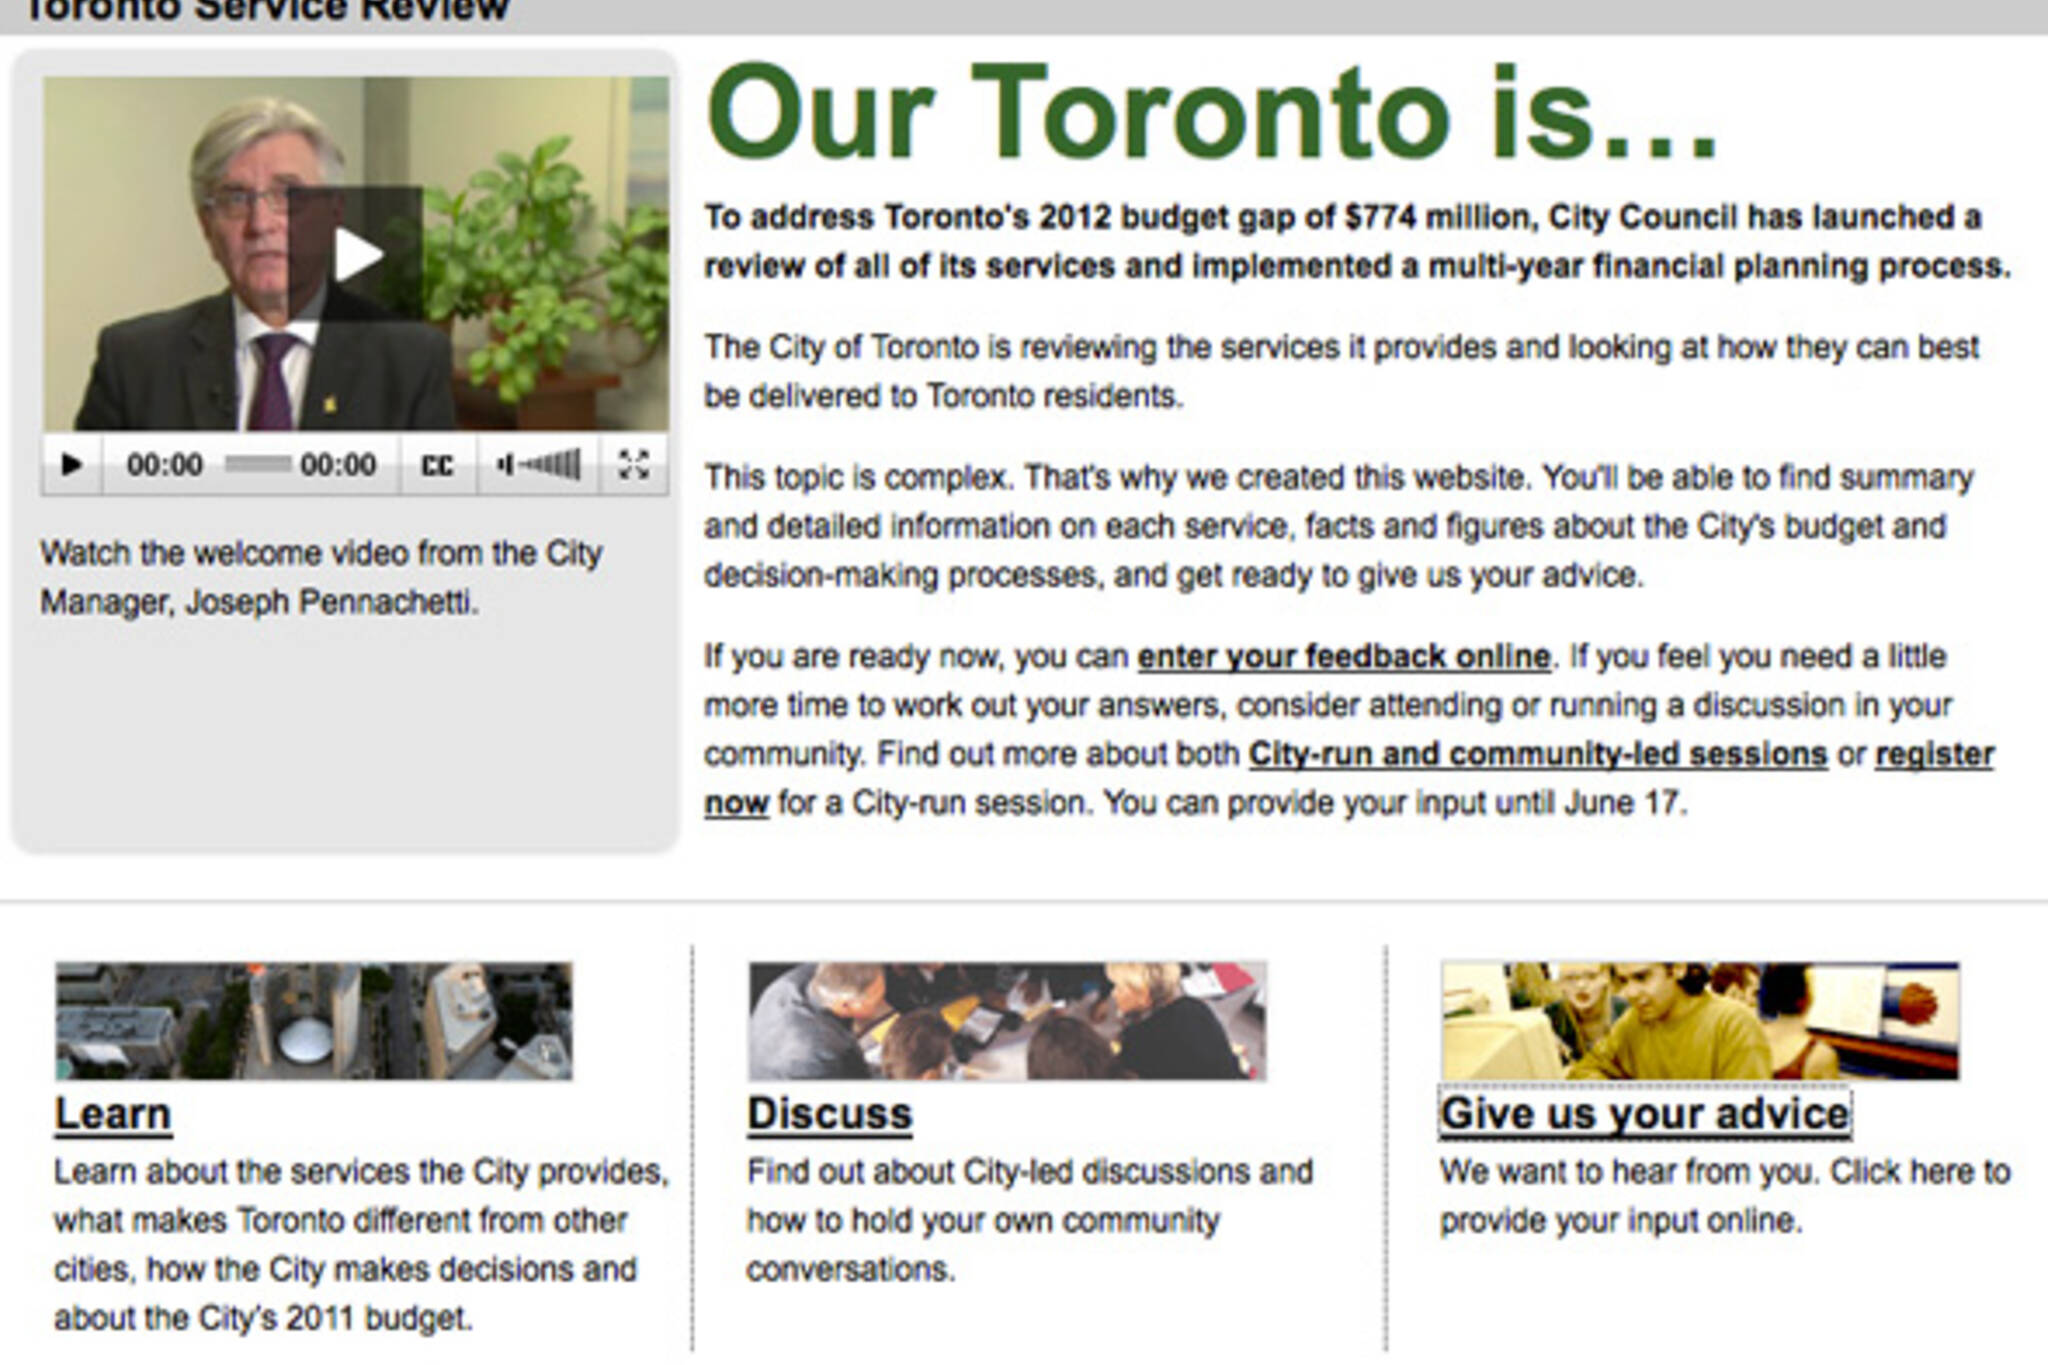 City of Toronto Services Review